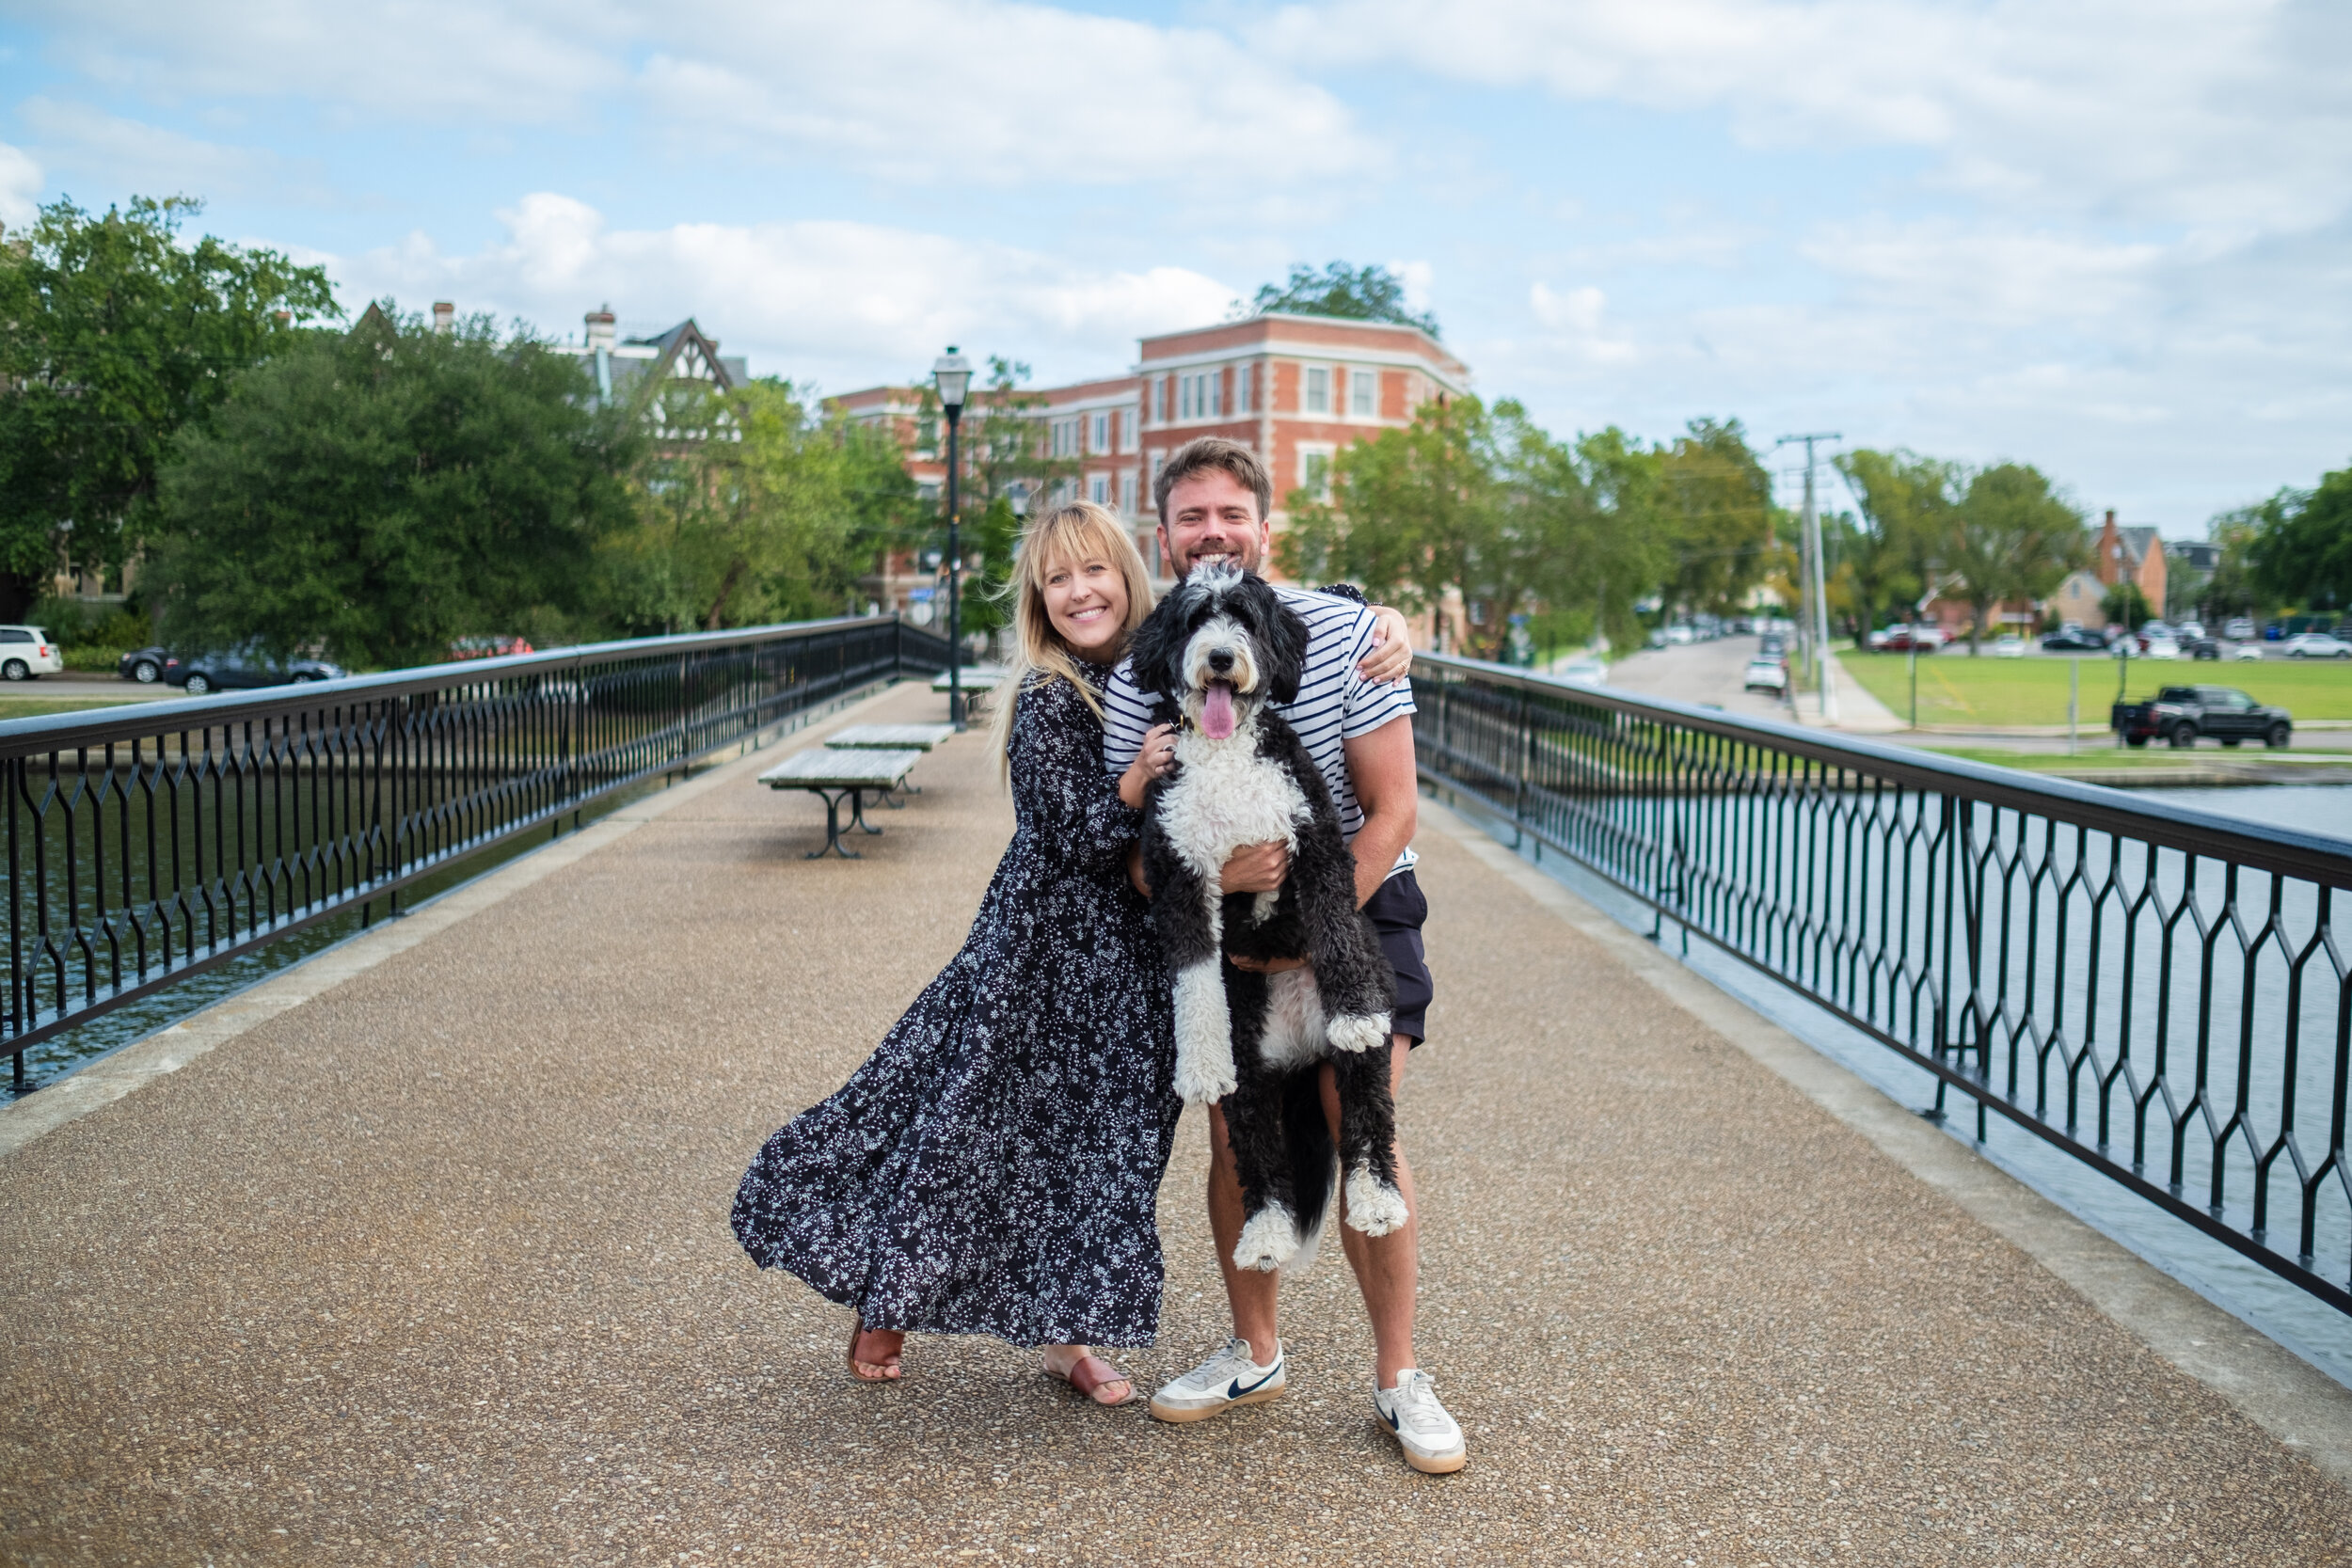 Family photo from our walk on the Elizabeth River Trail